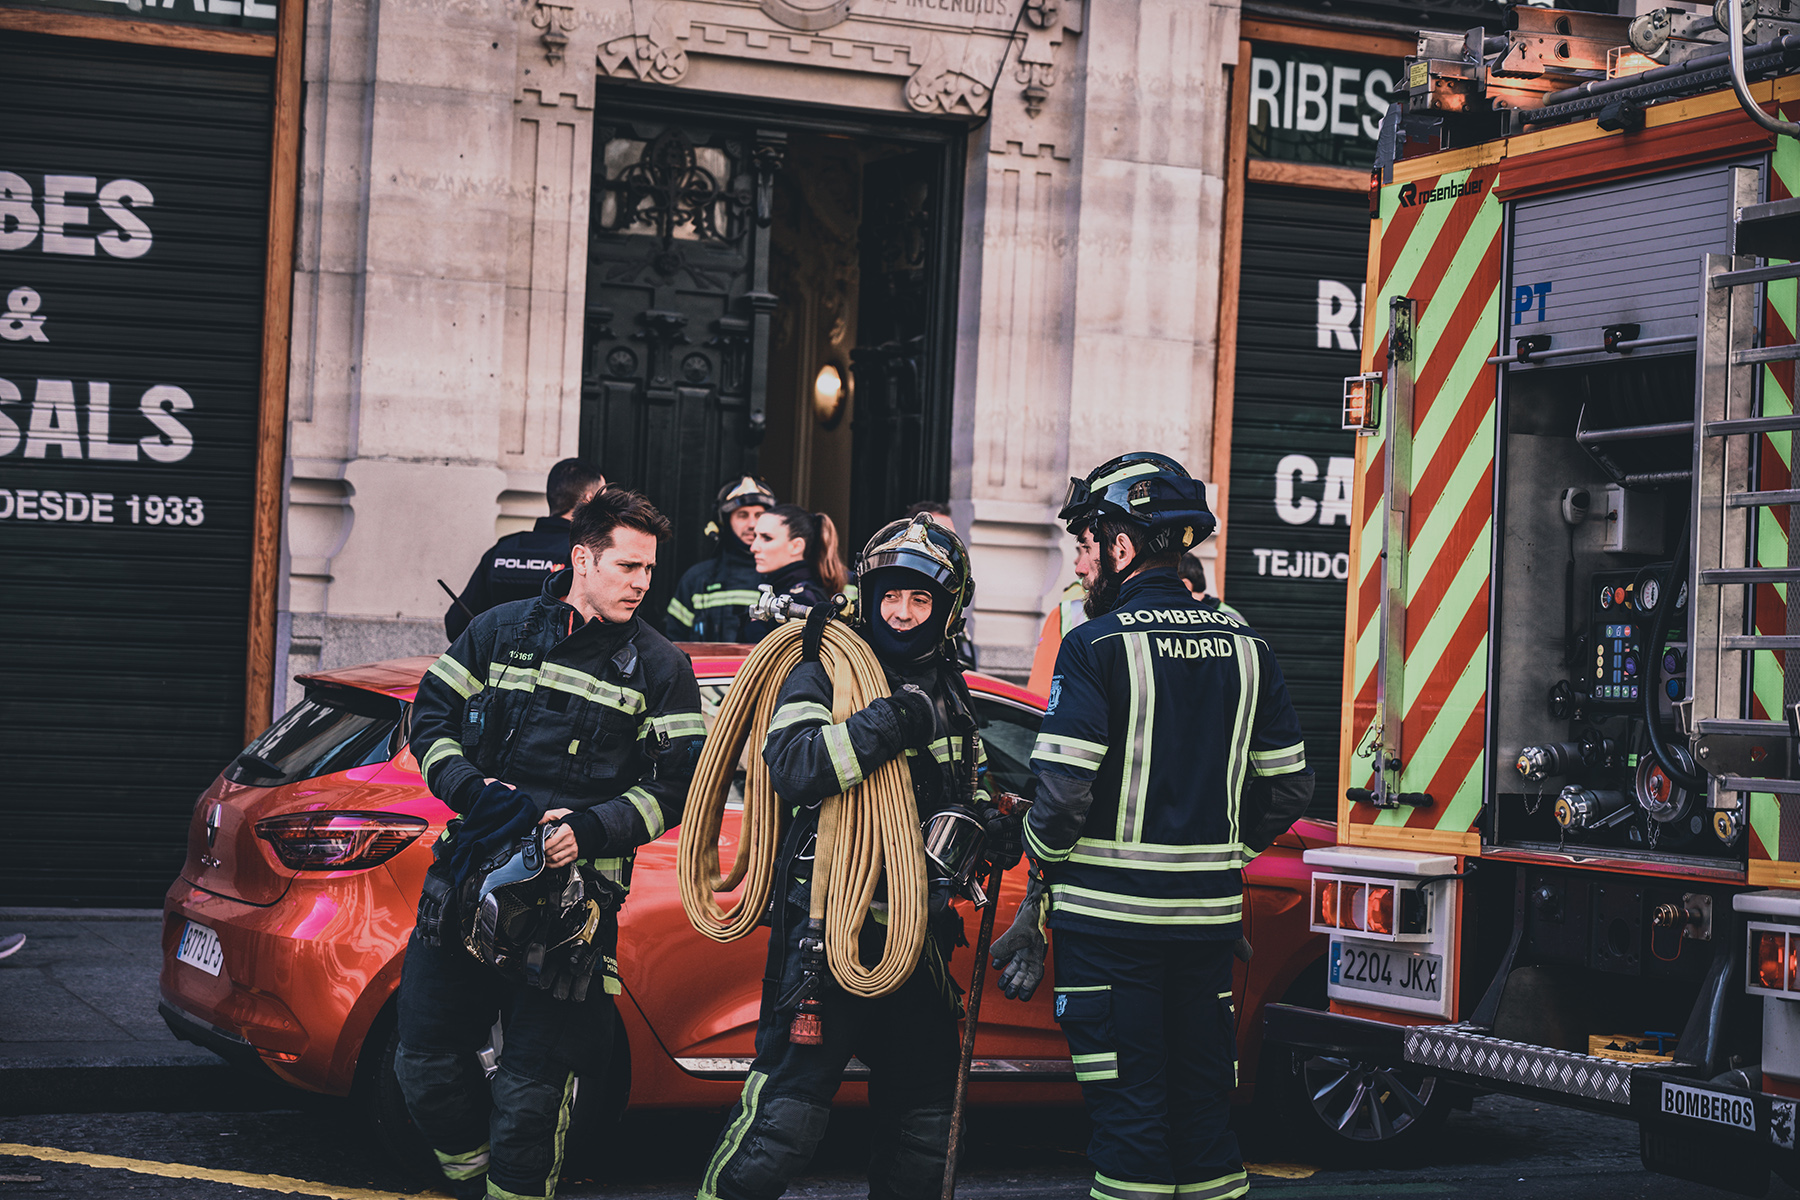 Firefighters in Madrid